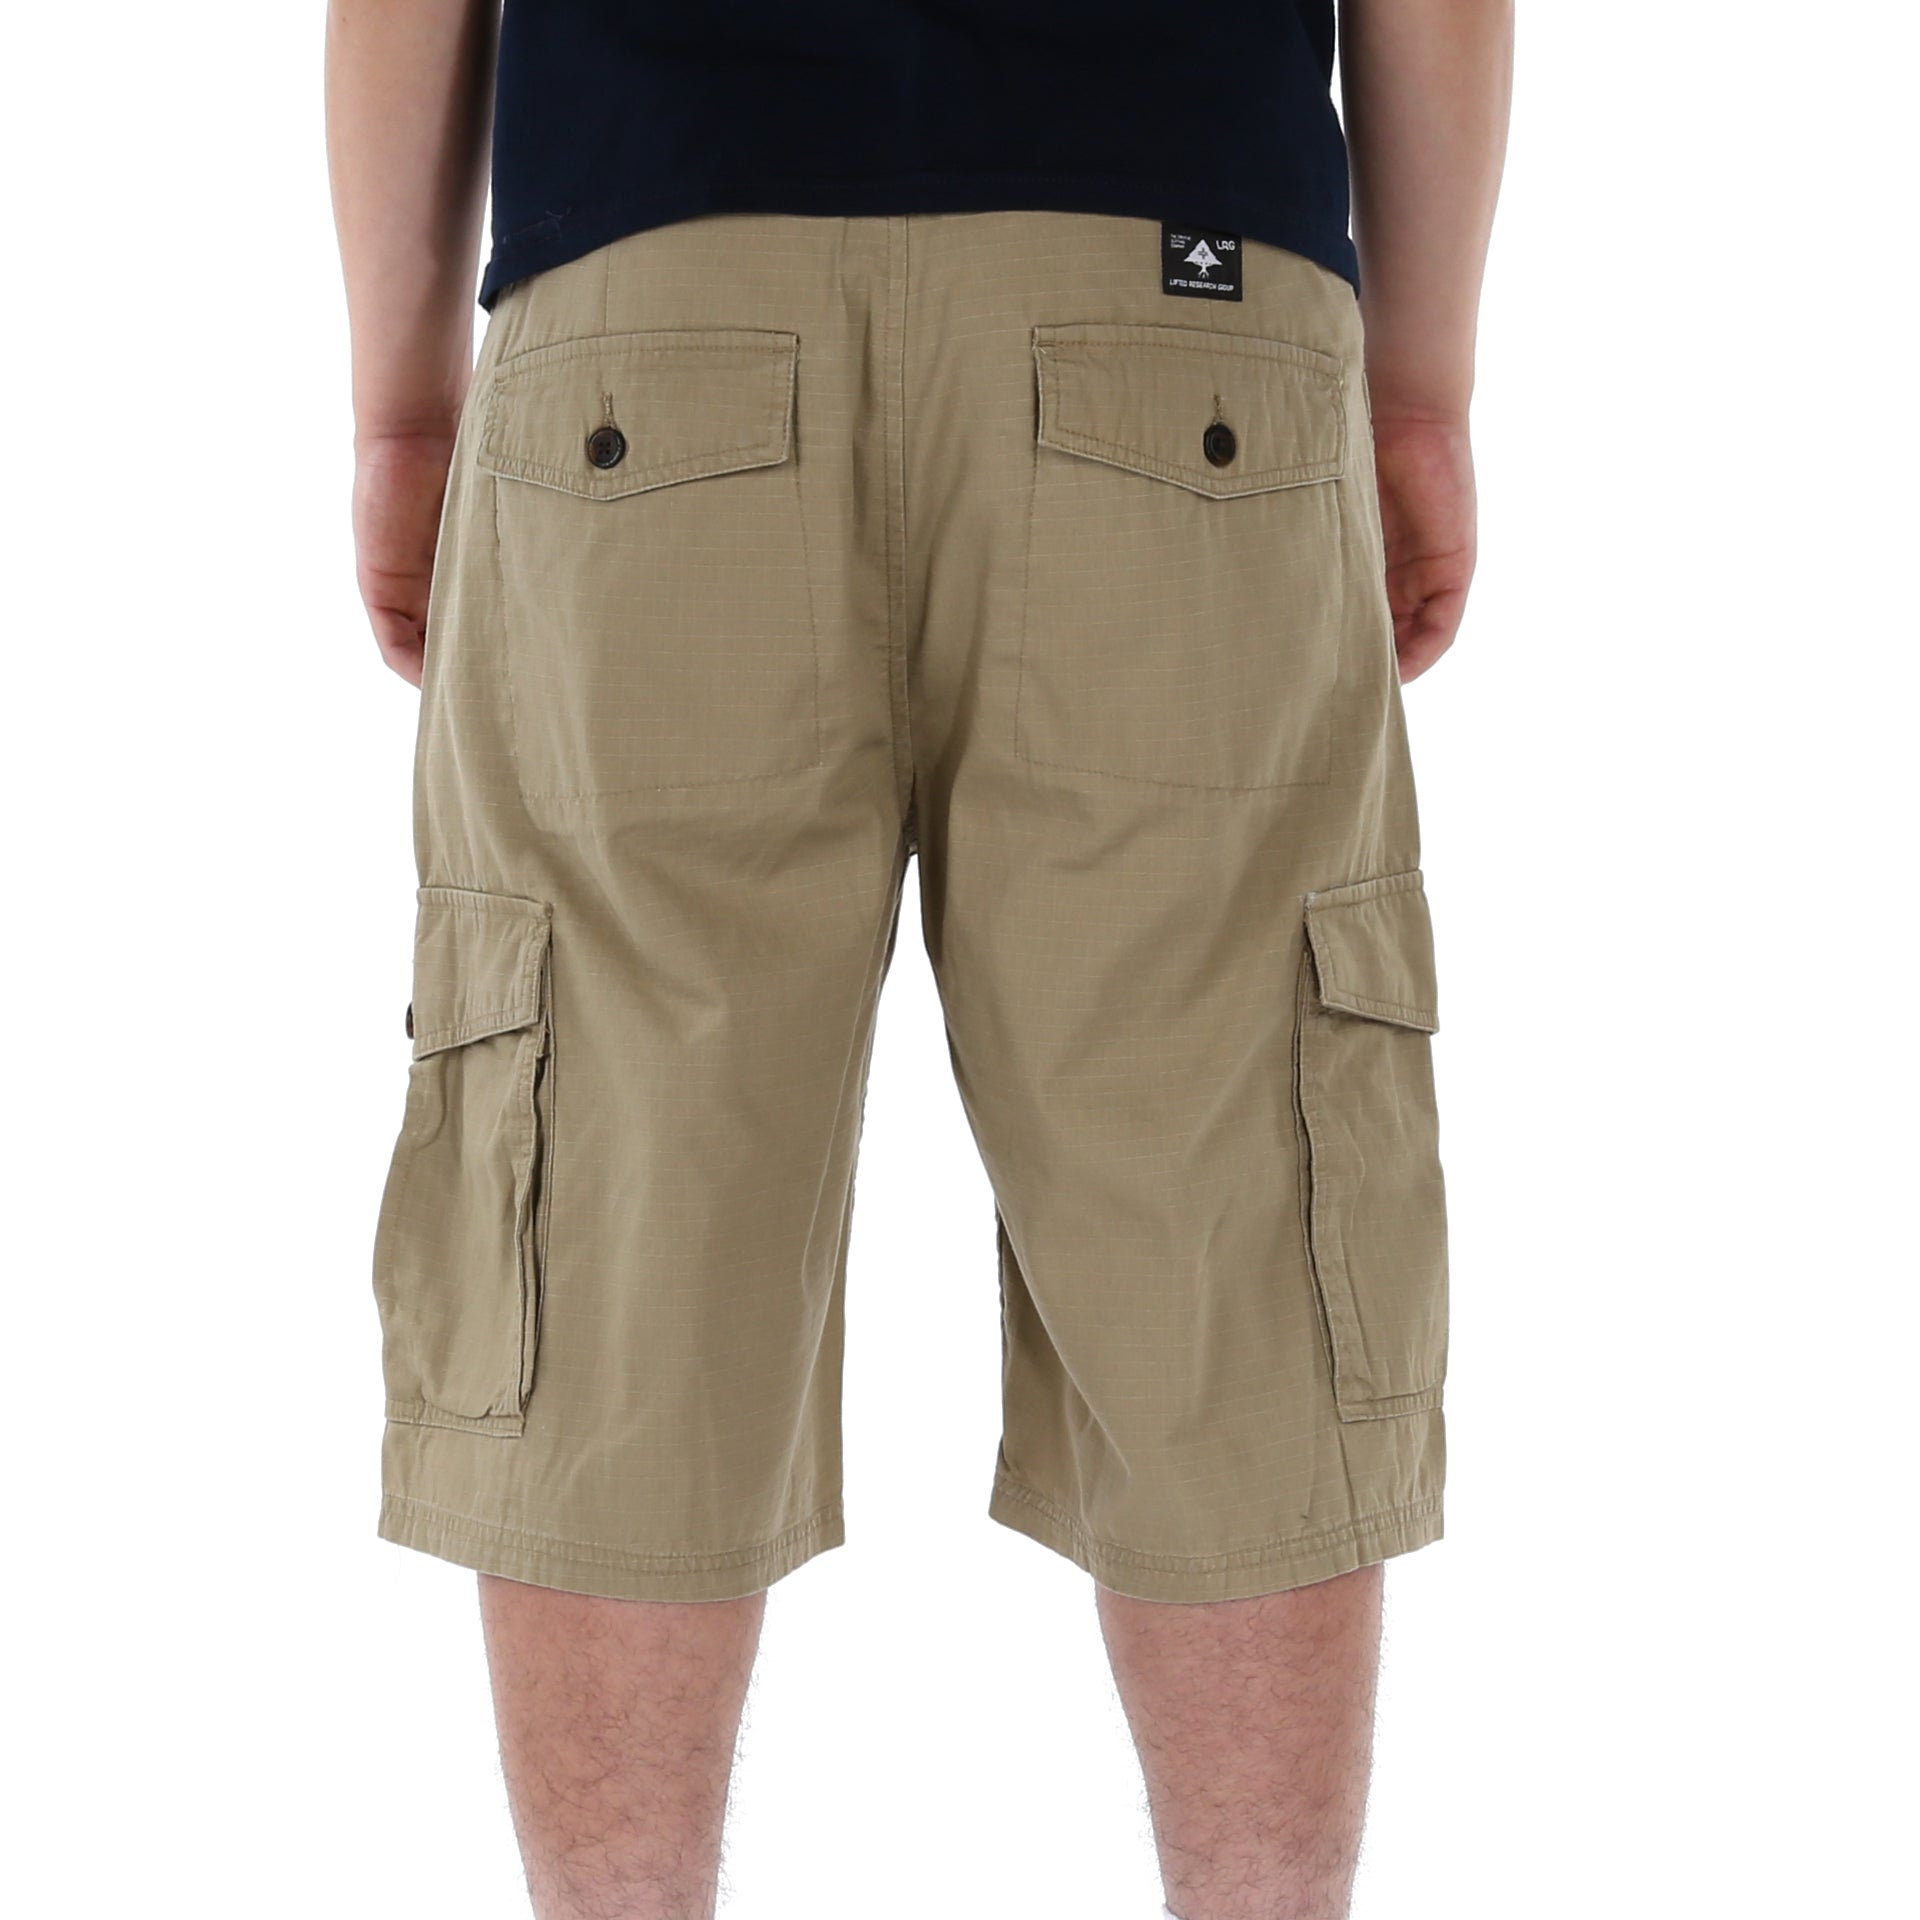 09d777b2814d2 LRG Ripstop Mens Cargo Shorts - Khaki - New Star